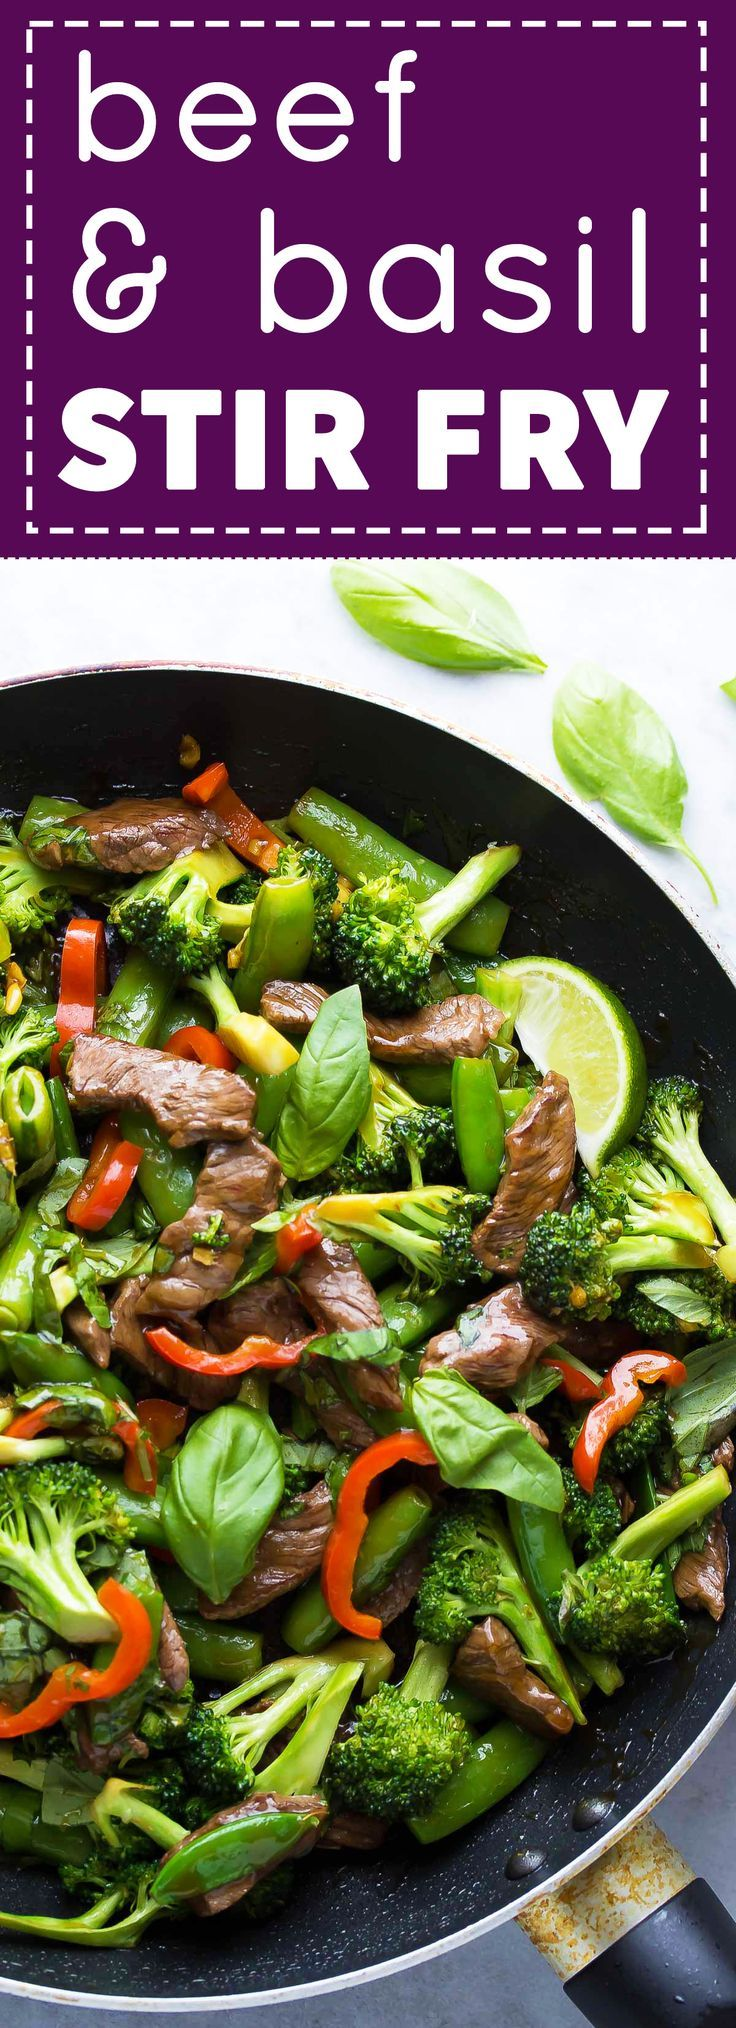 This Thai Lime Beef & Basil Stir Fry is ready in under 30 minutes!